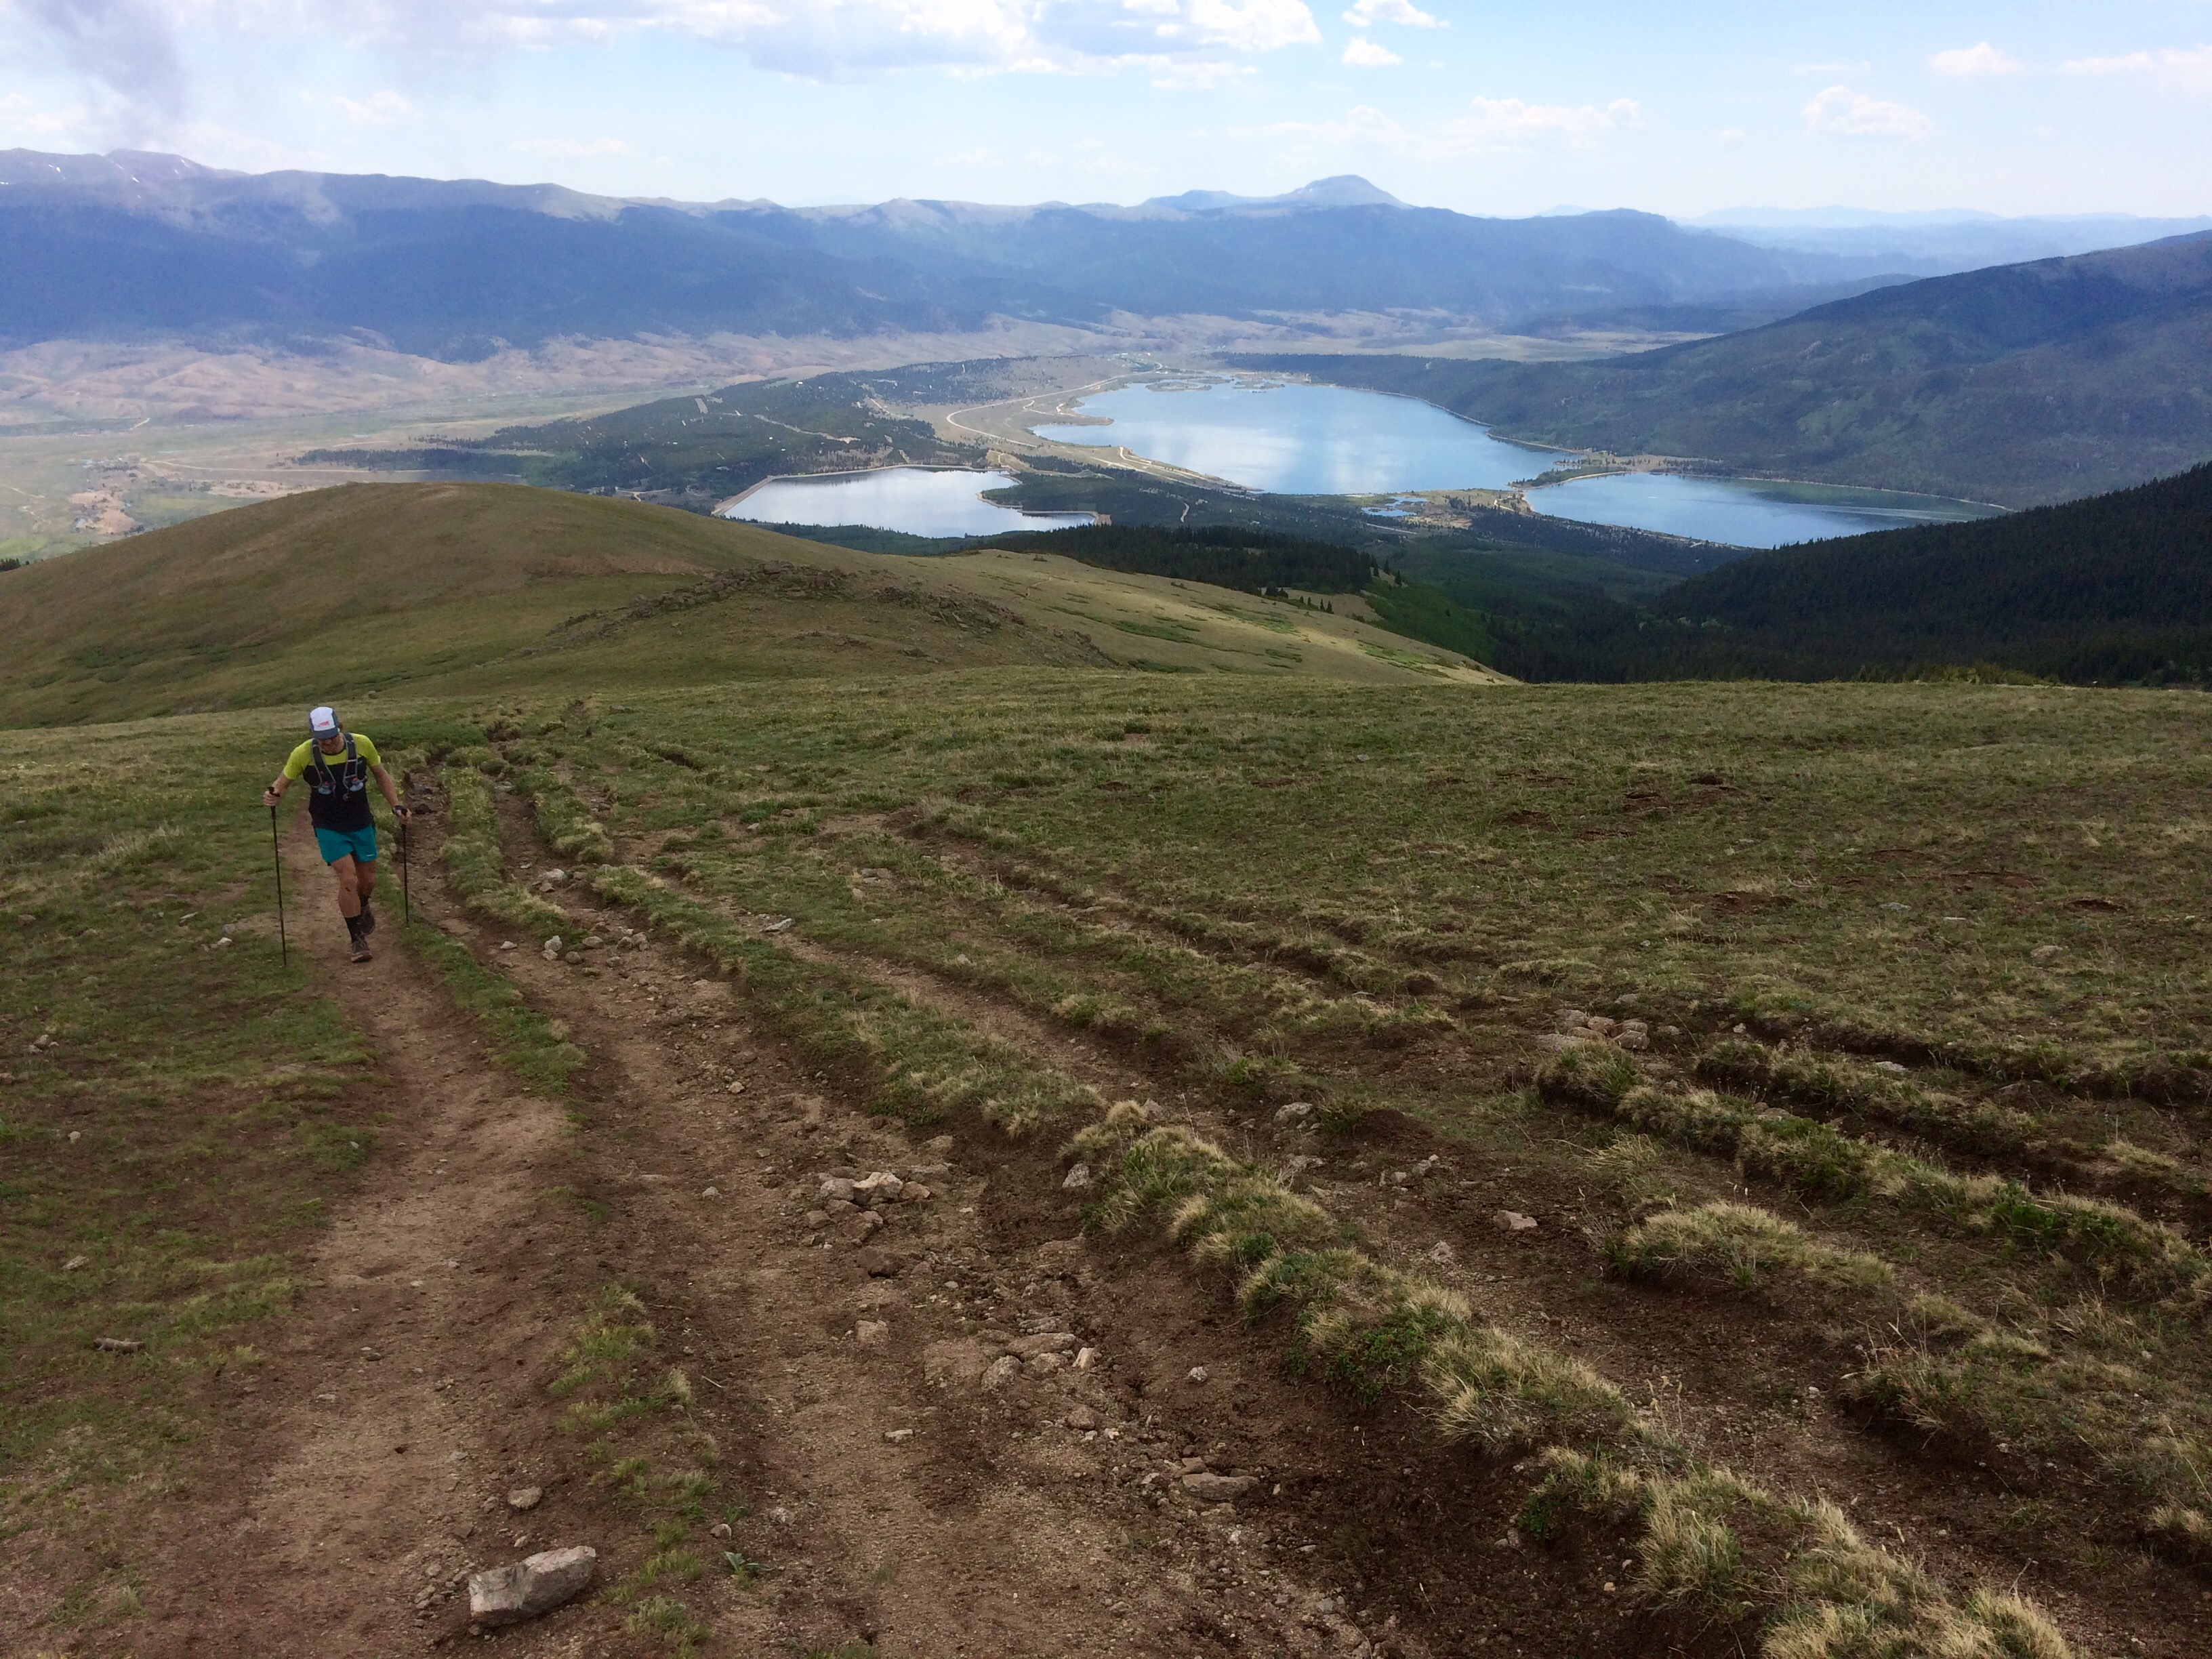 A hiker above treeline on Mt. Elbert, Colorado'shighest mountain, walks to the side of the heavily damaged trail up the East Ridge in July 2017.